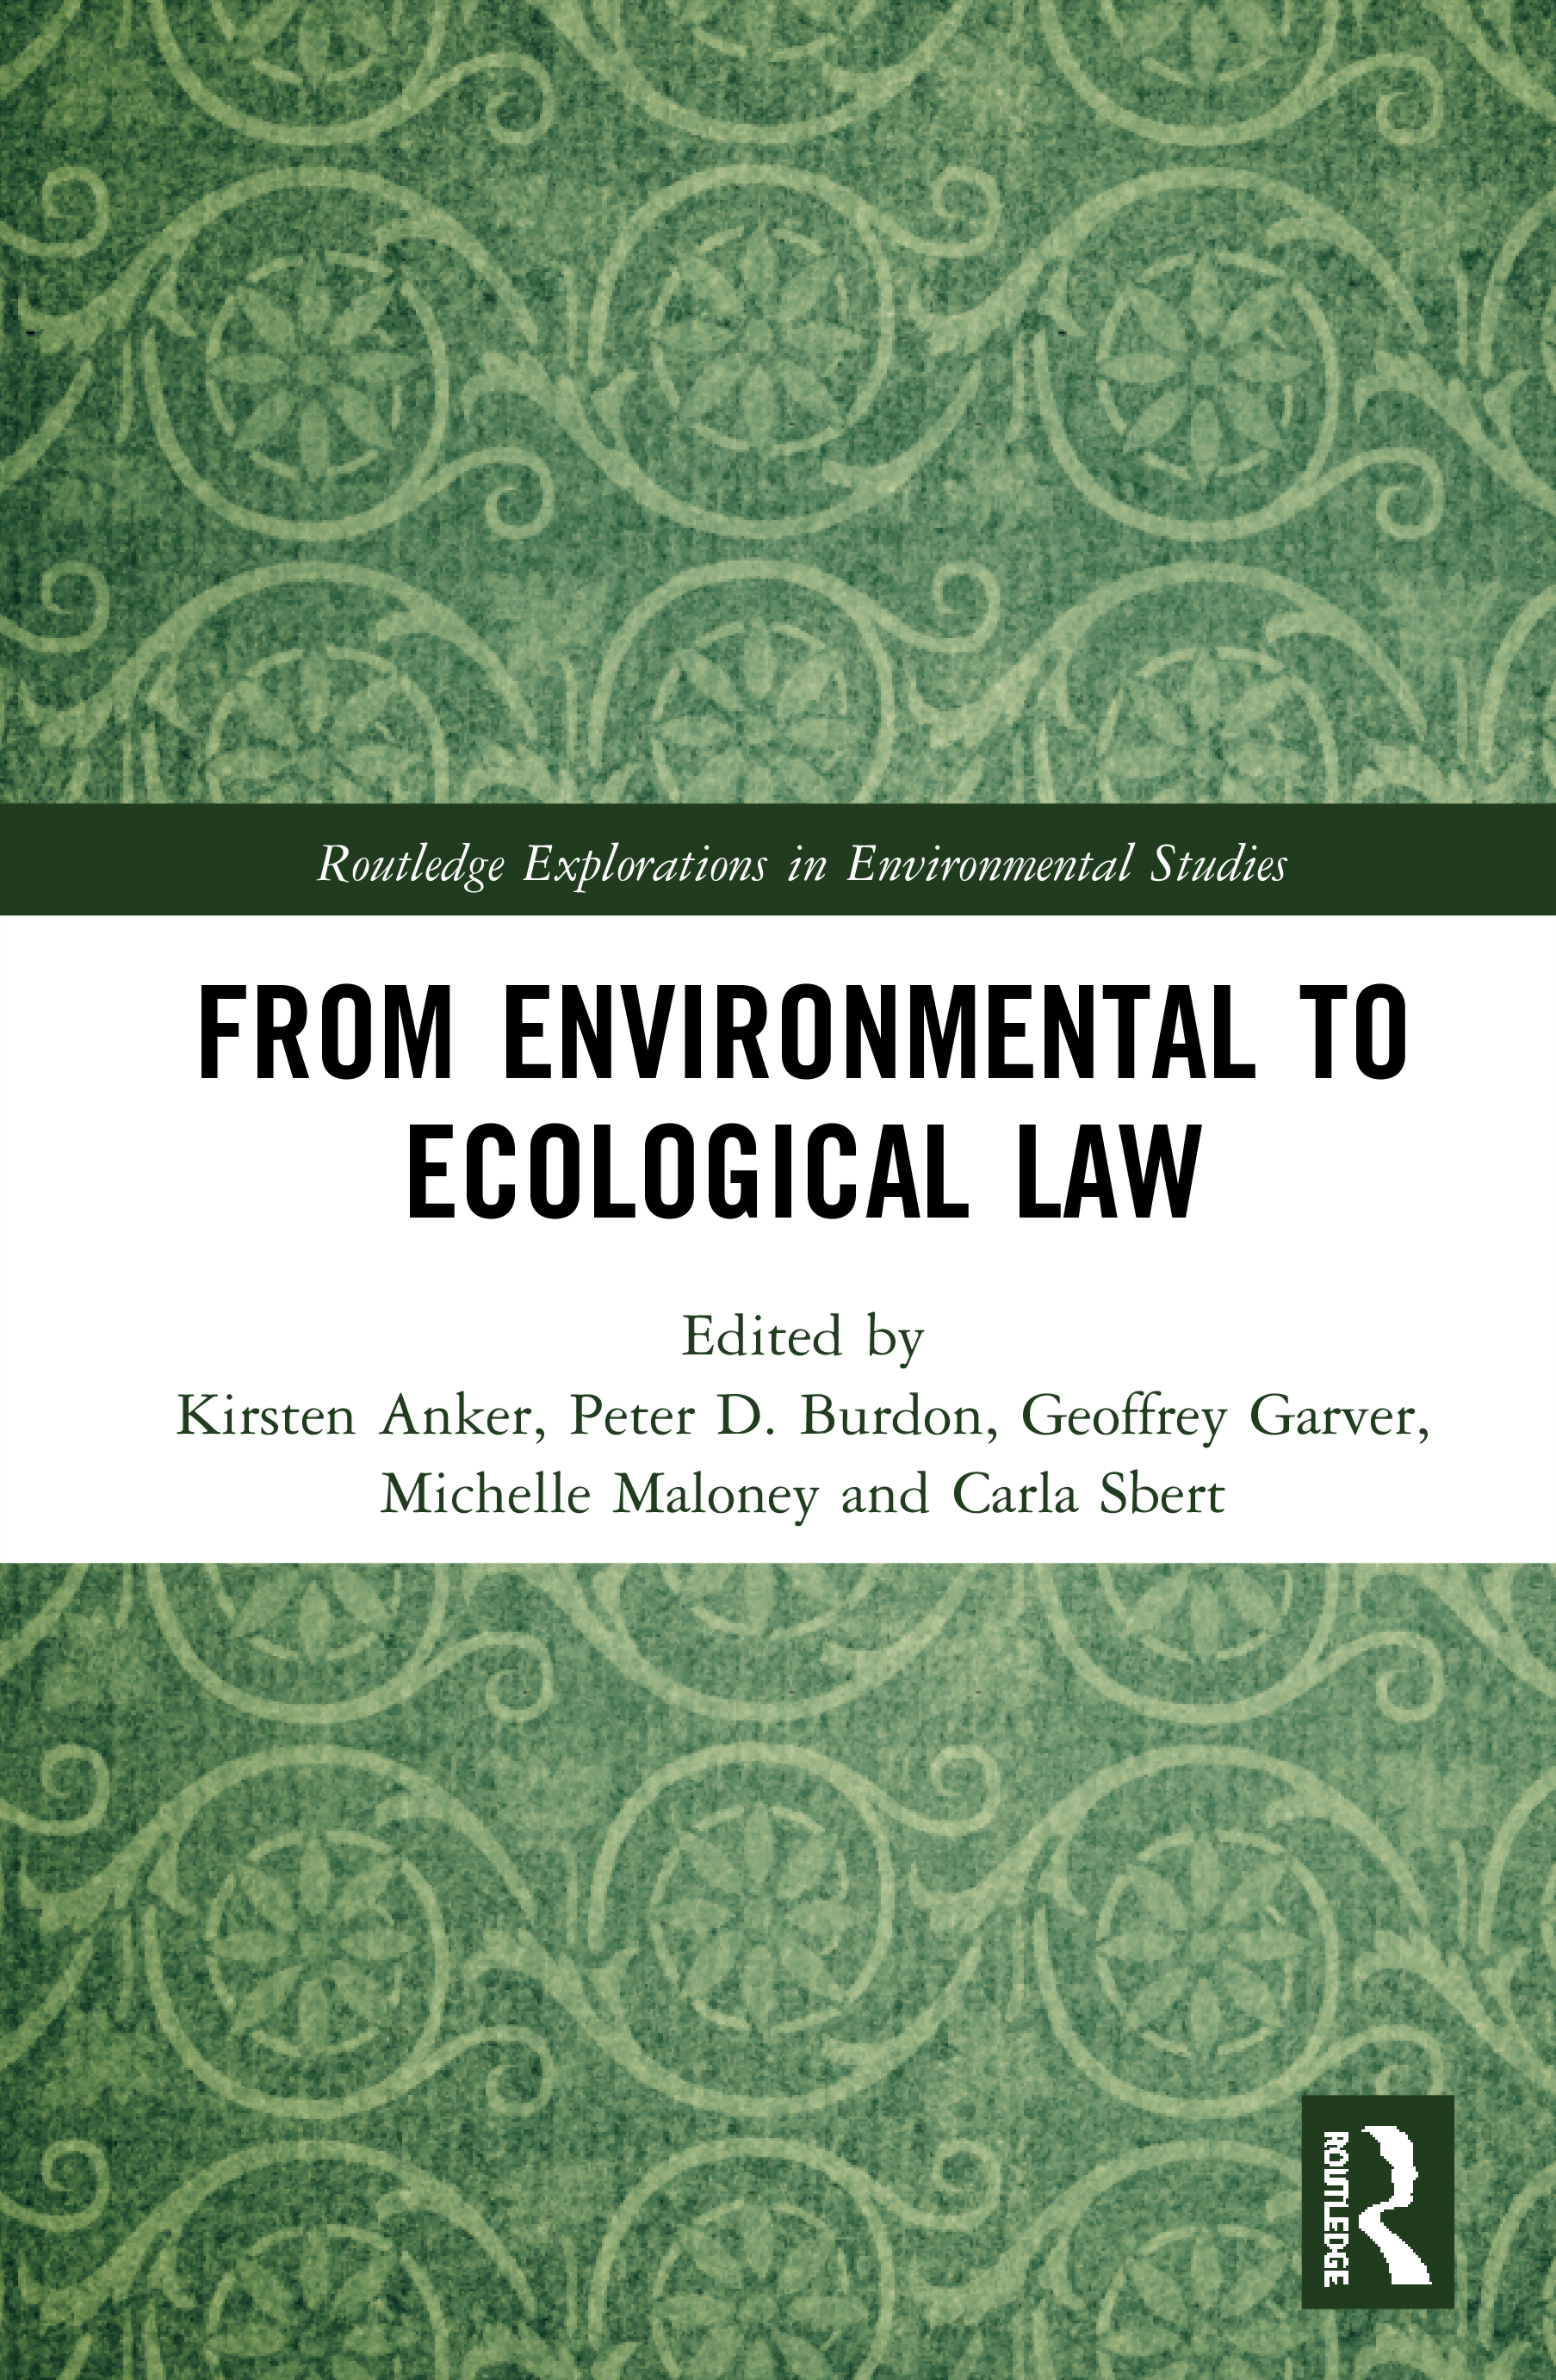 Indigenous ecological knowledge and the transition to ecological law in the United States